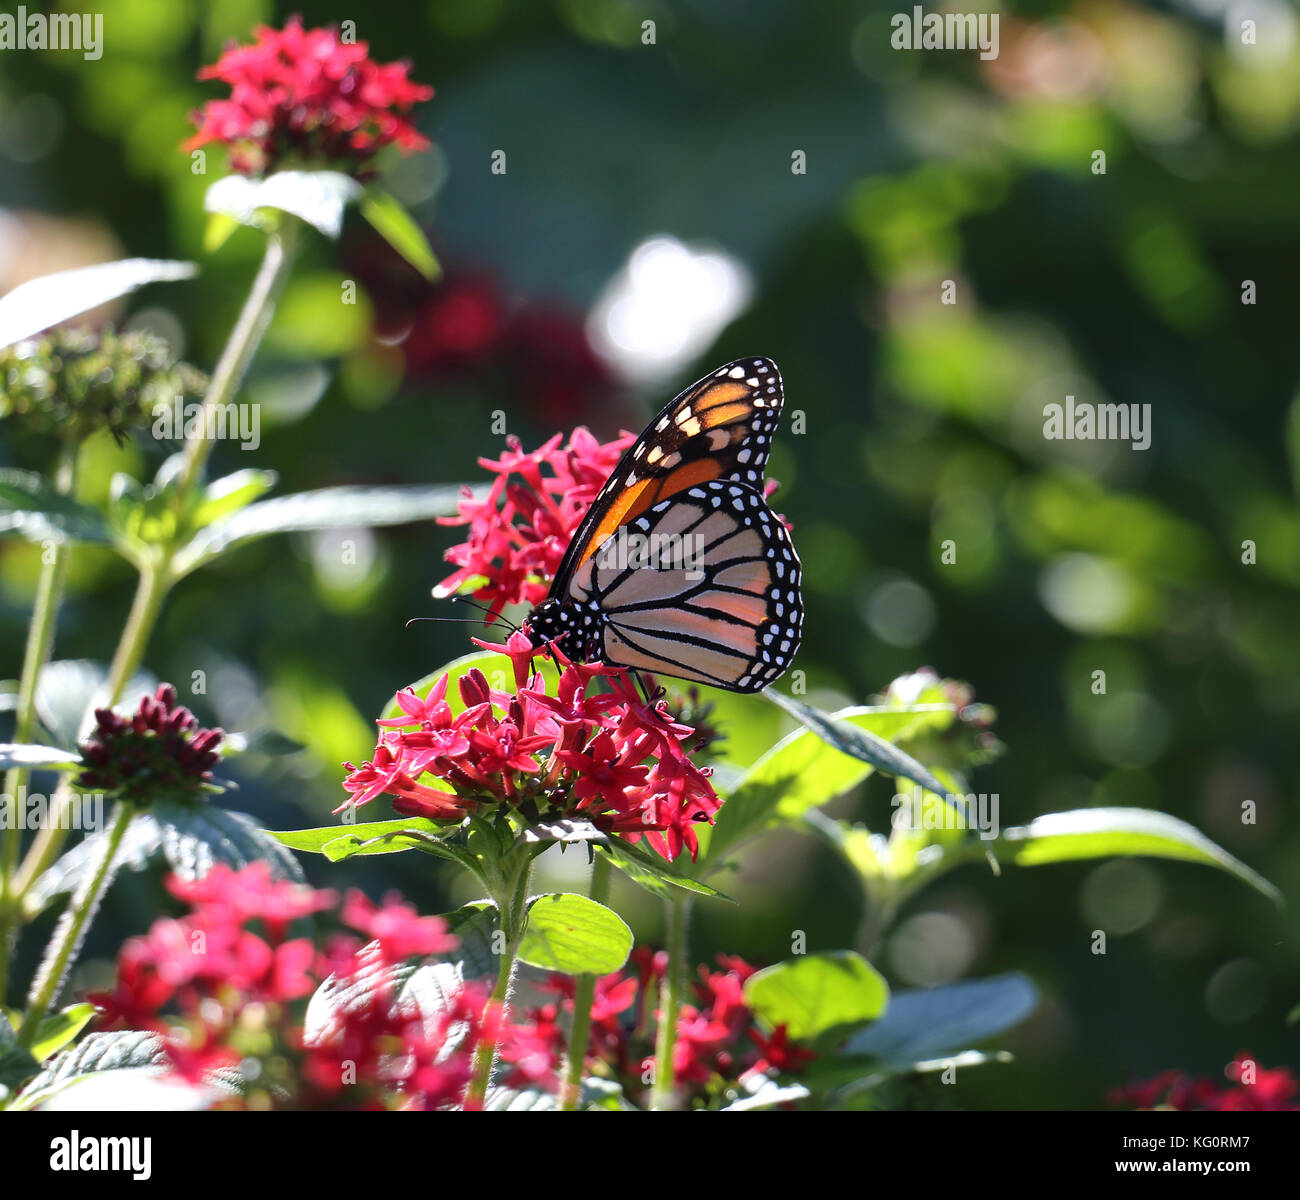 Butterfly flower scenery stock photos butterfly flower scenery the bright sunshine adds to the natural beauty of this garden as a strikingly colorful monarch izmirmasajfo